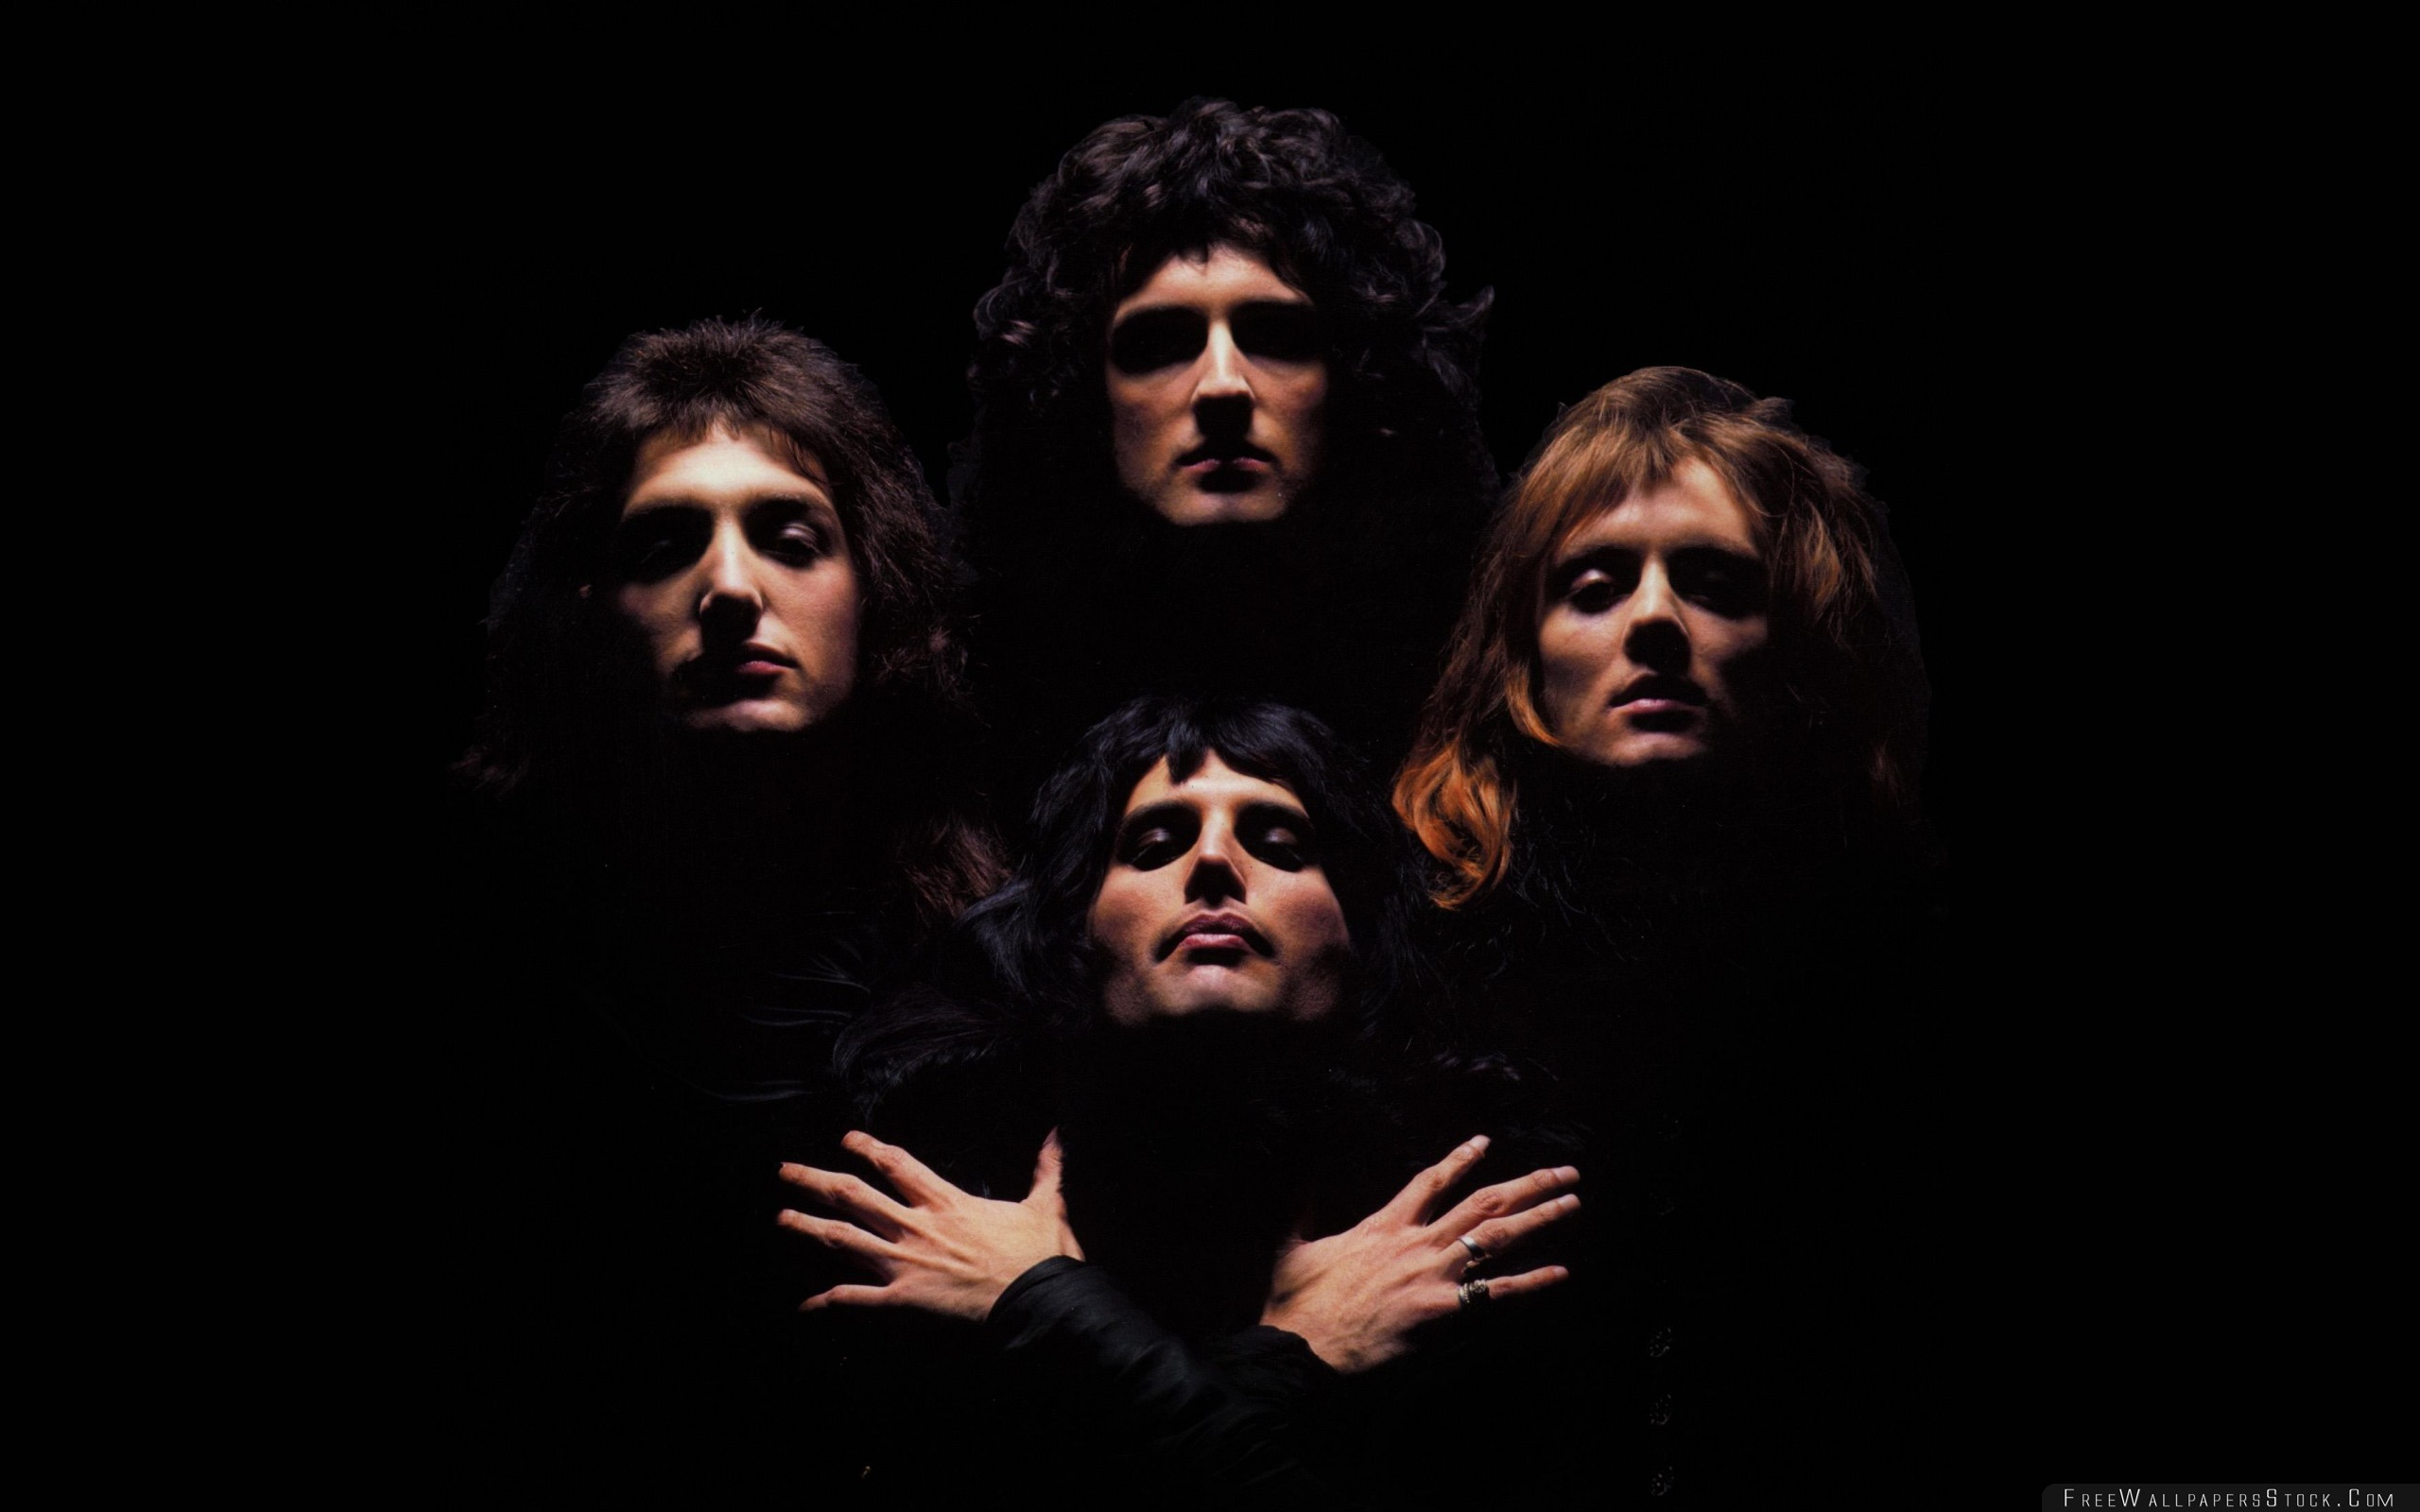 Download Free Wallpaper Queen Group Bohemian Rhapsody Celebrities